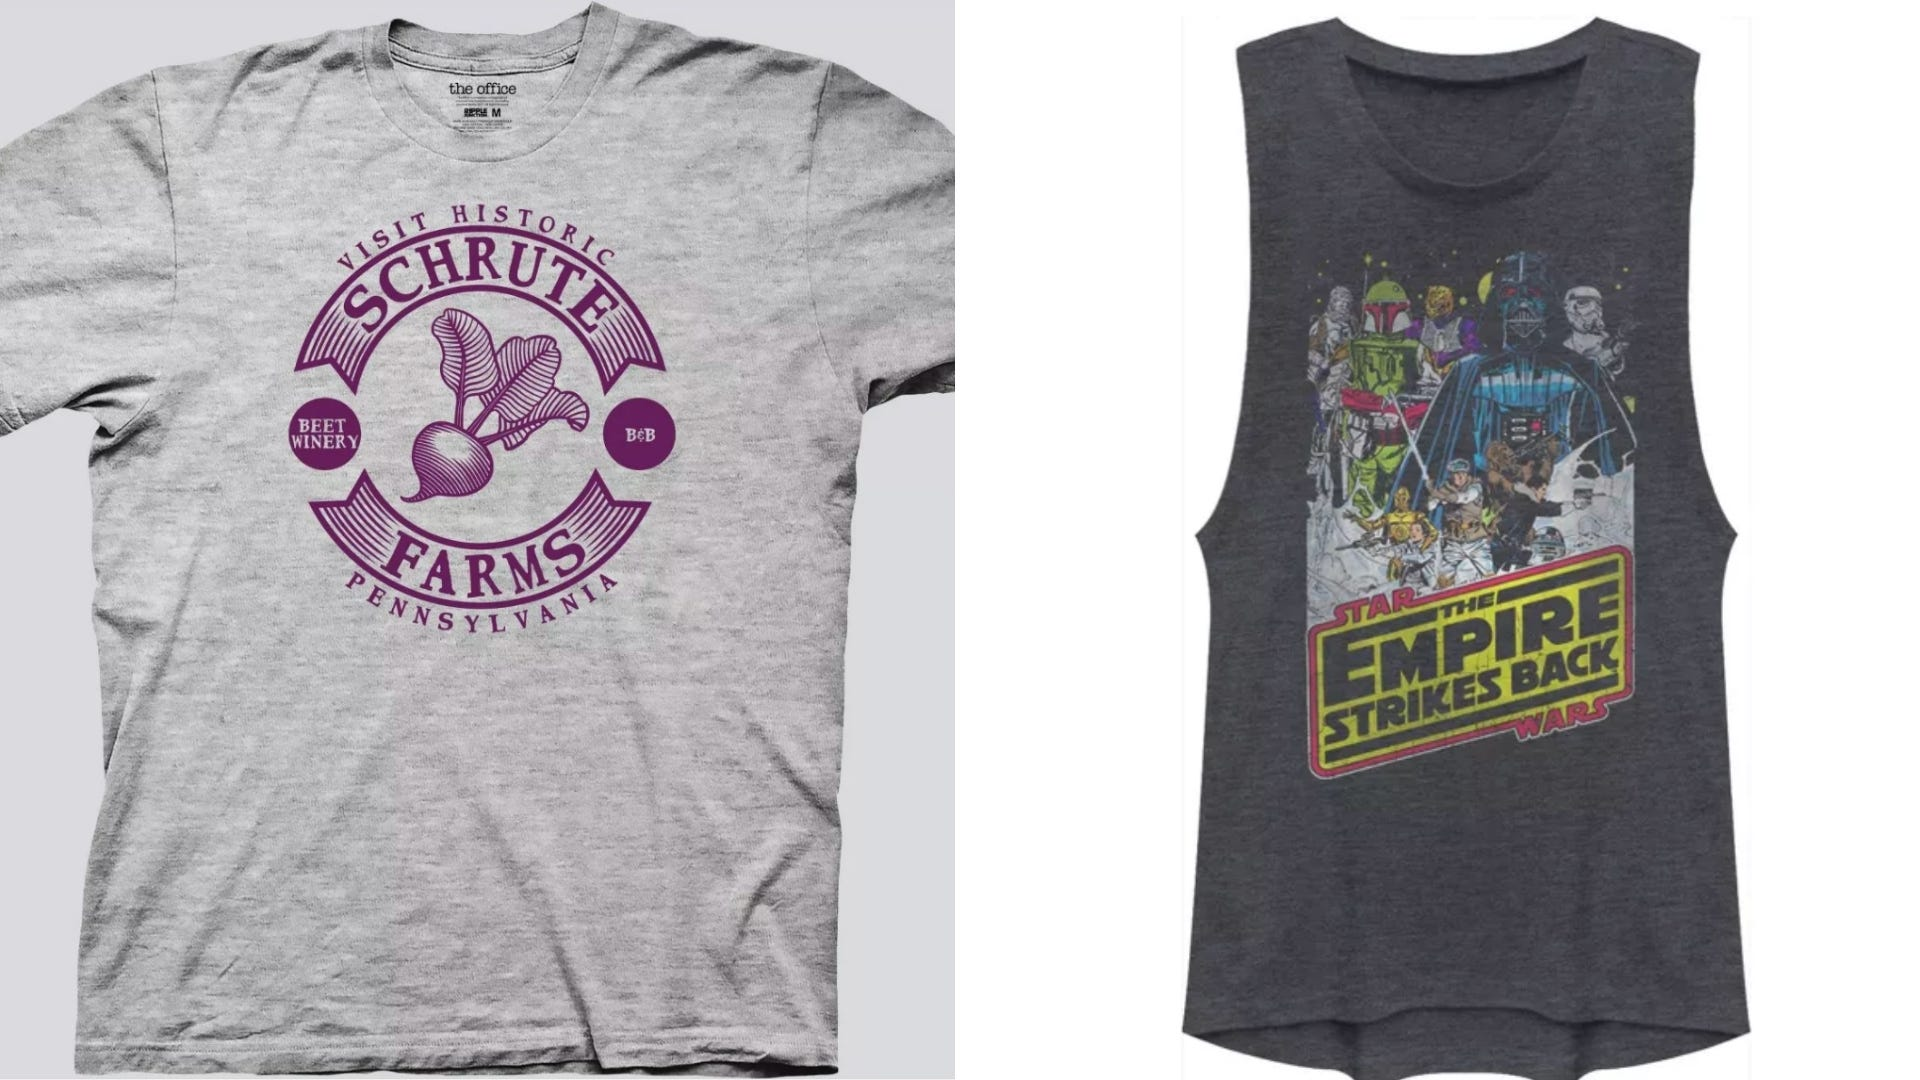 Gray t-shirt with Shrute Farms reference and tank top with Star Wars picture on the front